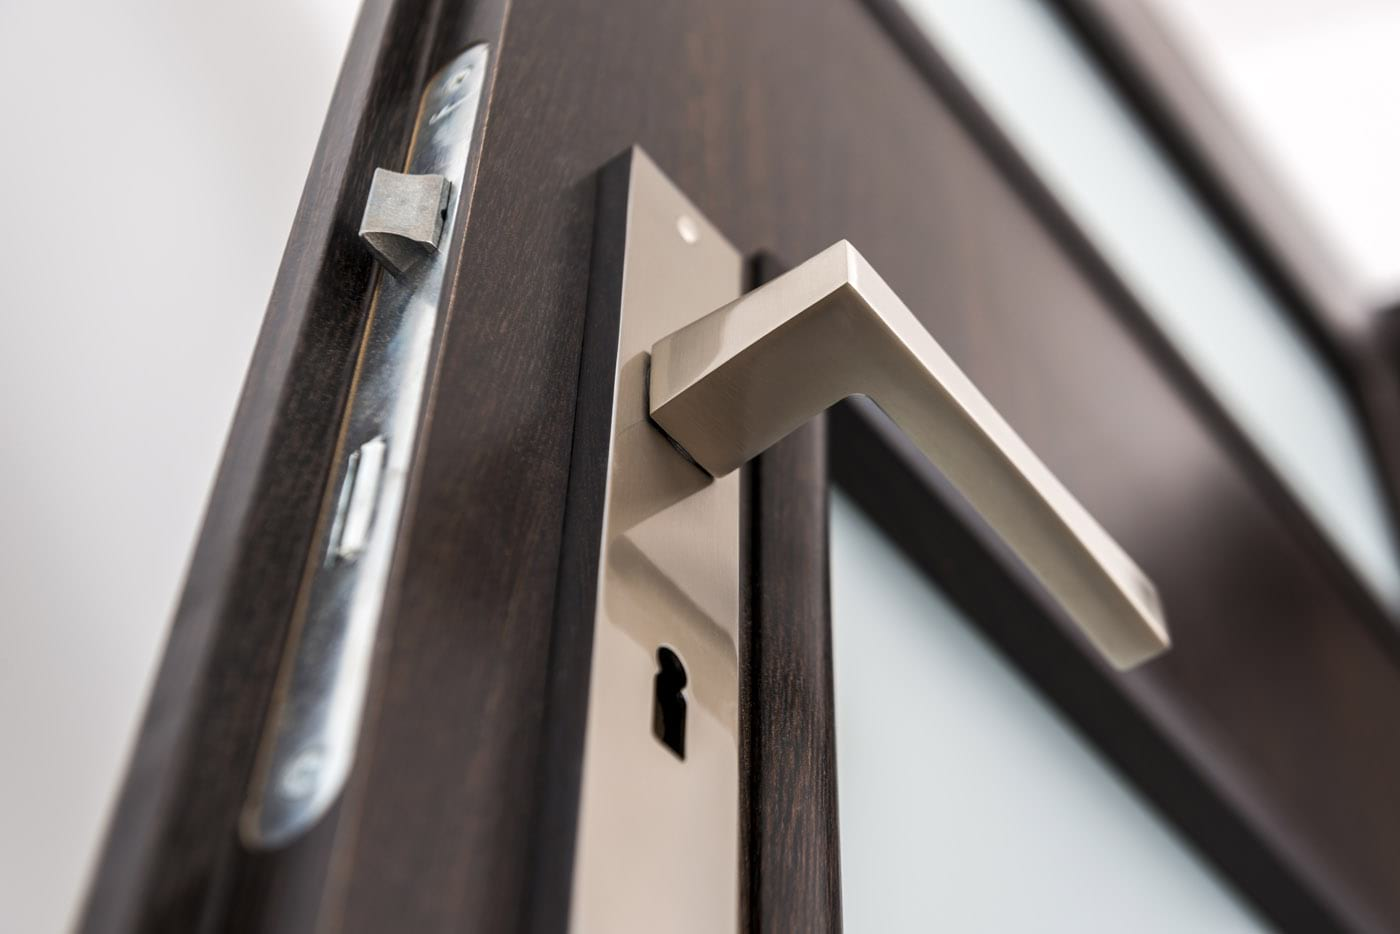 Define the look of your bespoke windows by choosing the right handles. Window handle styles include monkey tail, tear drop & standard designs in a range of colours & finishes. Select matching furniture to complete the look.